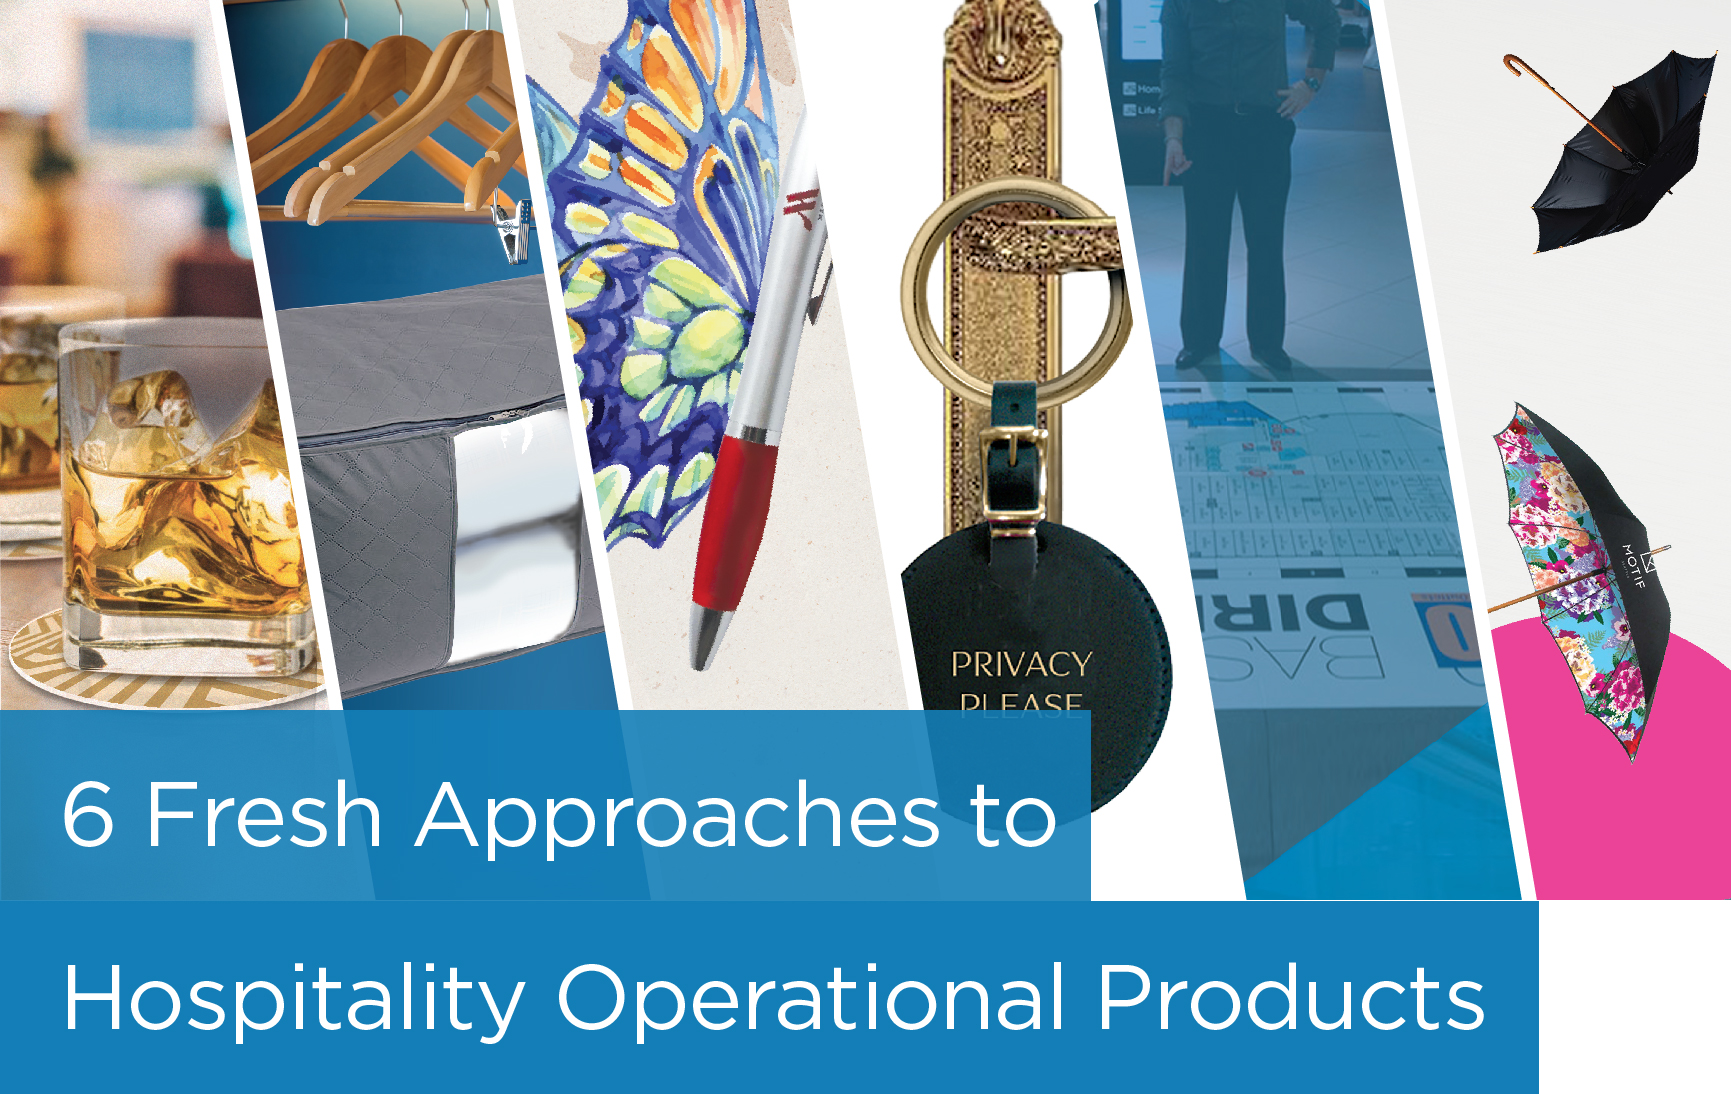 6 Fresh Approaches to Hospitality Operational Products